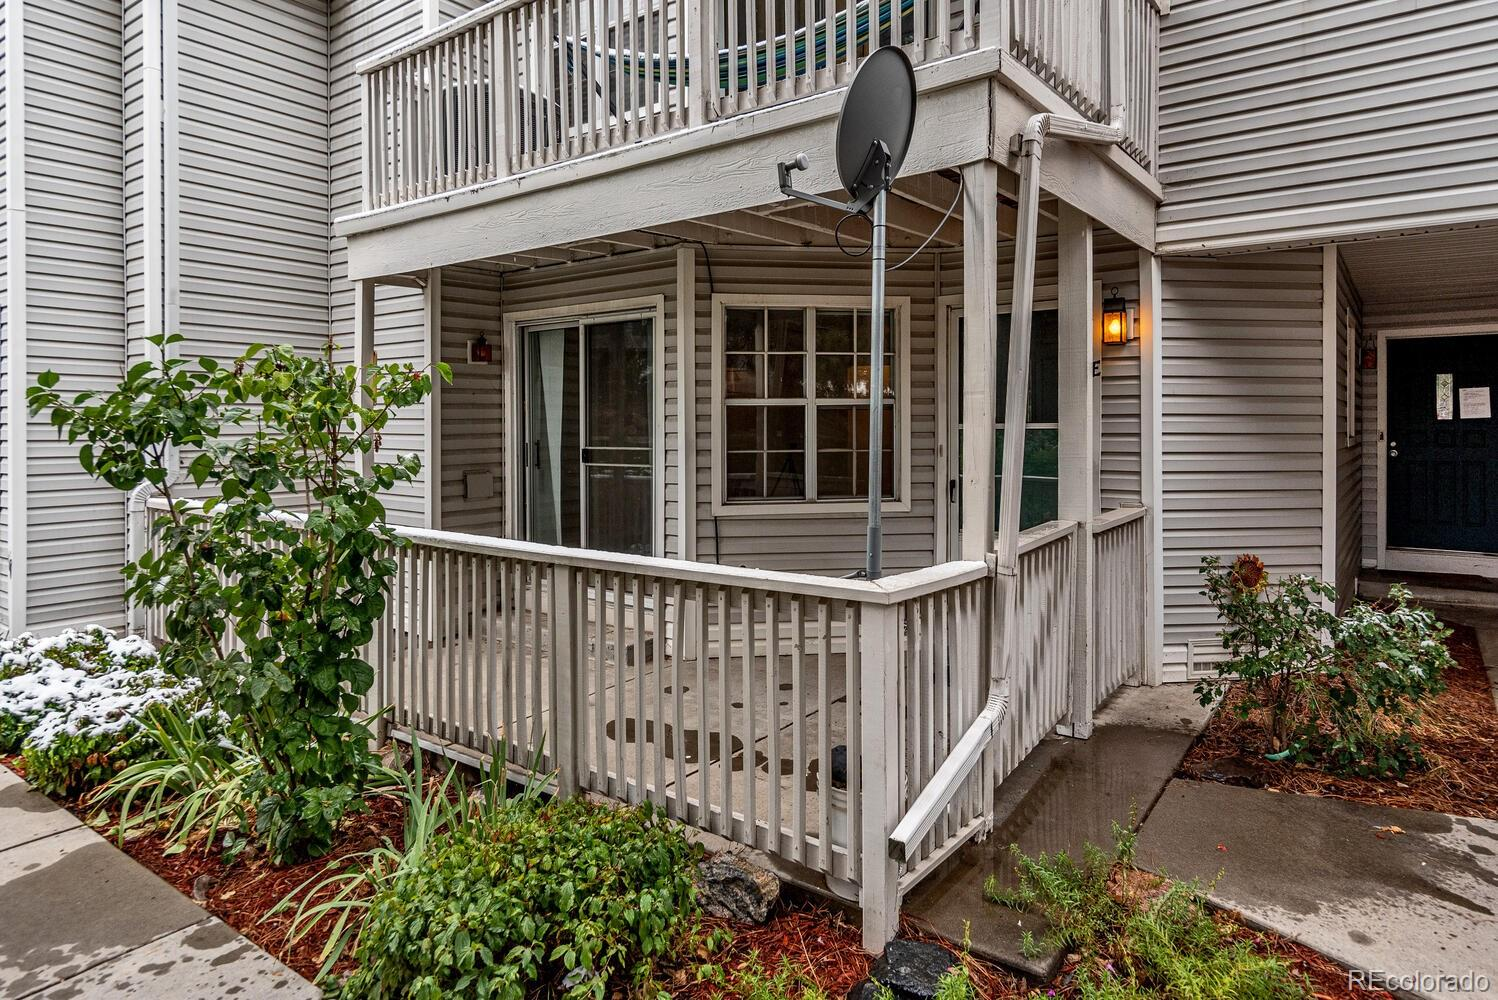 Don't miss this 1 Bed 1 Bath Ranch maintenance free condo with an attached garage! Open floor plan with no stairs. Large patio offof the living room is great for entertaining. Large bedroom with double closets  Additional photos coming soon!